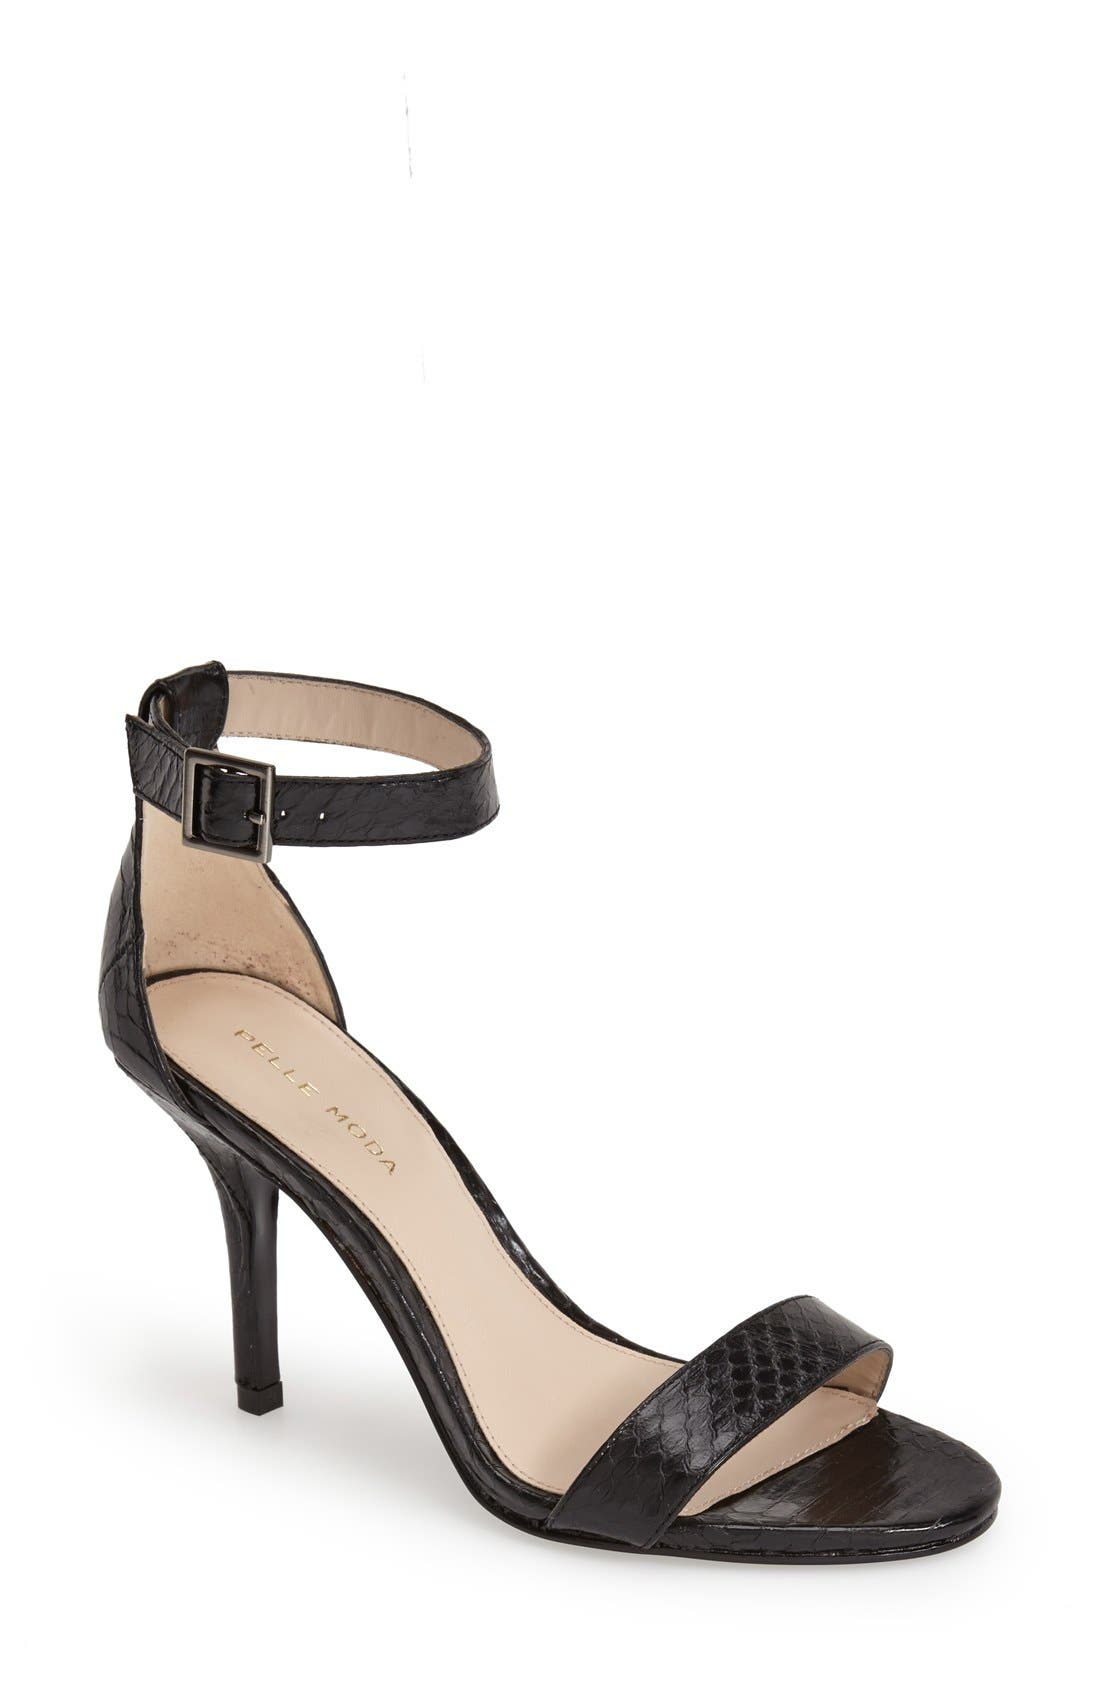 Alternate Image 1 Selected - Pelle Moda 'Kacey' Sandal (Women)